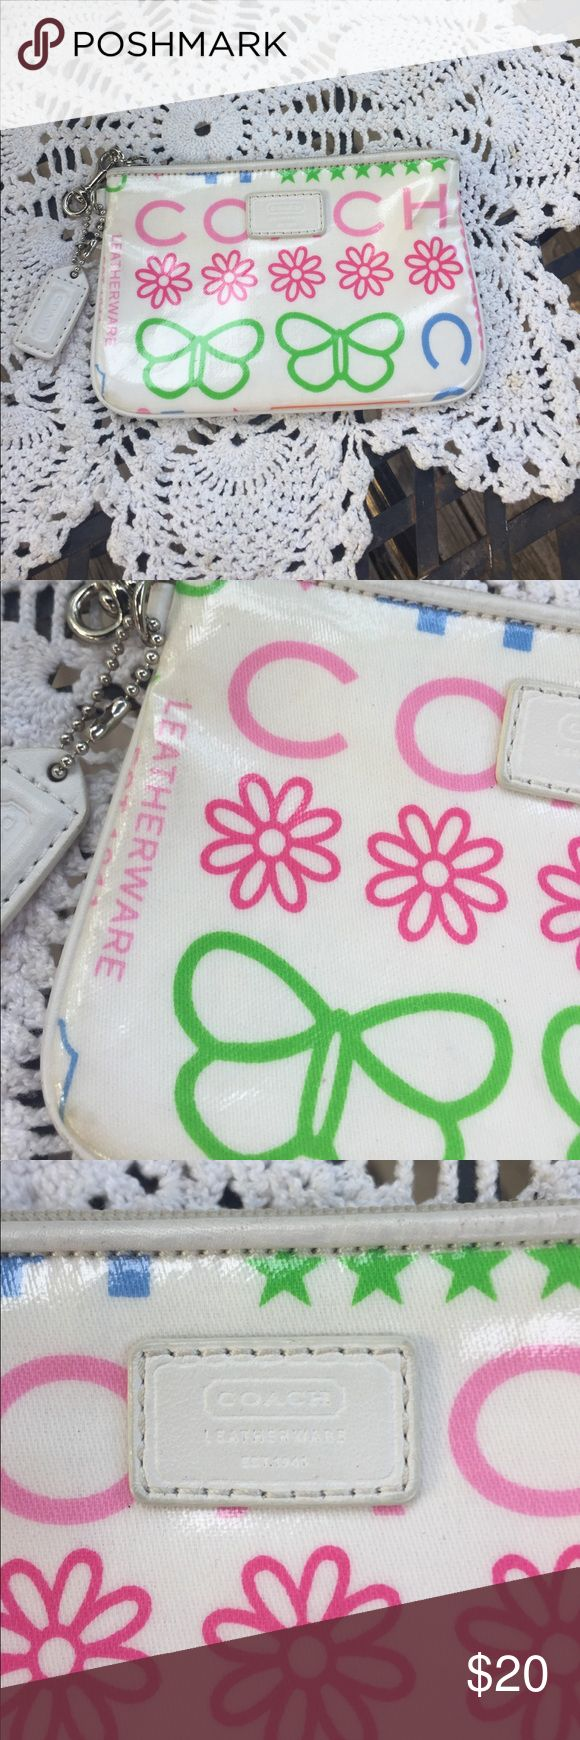 Auth. Coach clutch Super cute and in EUC. Coach floral clutch. Great for Back to School Coach Accessories Watches